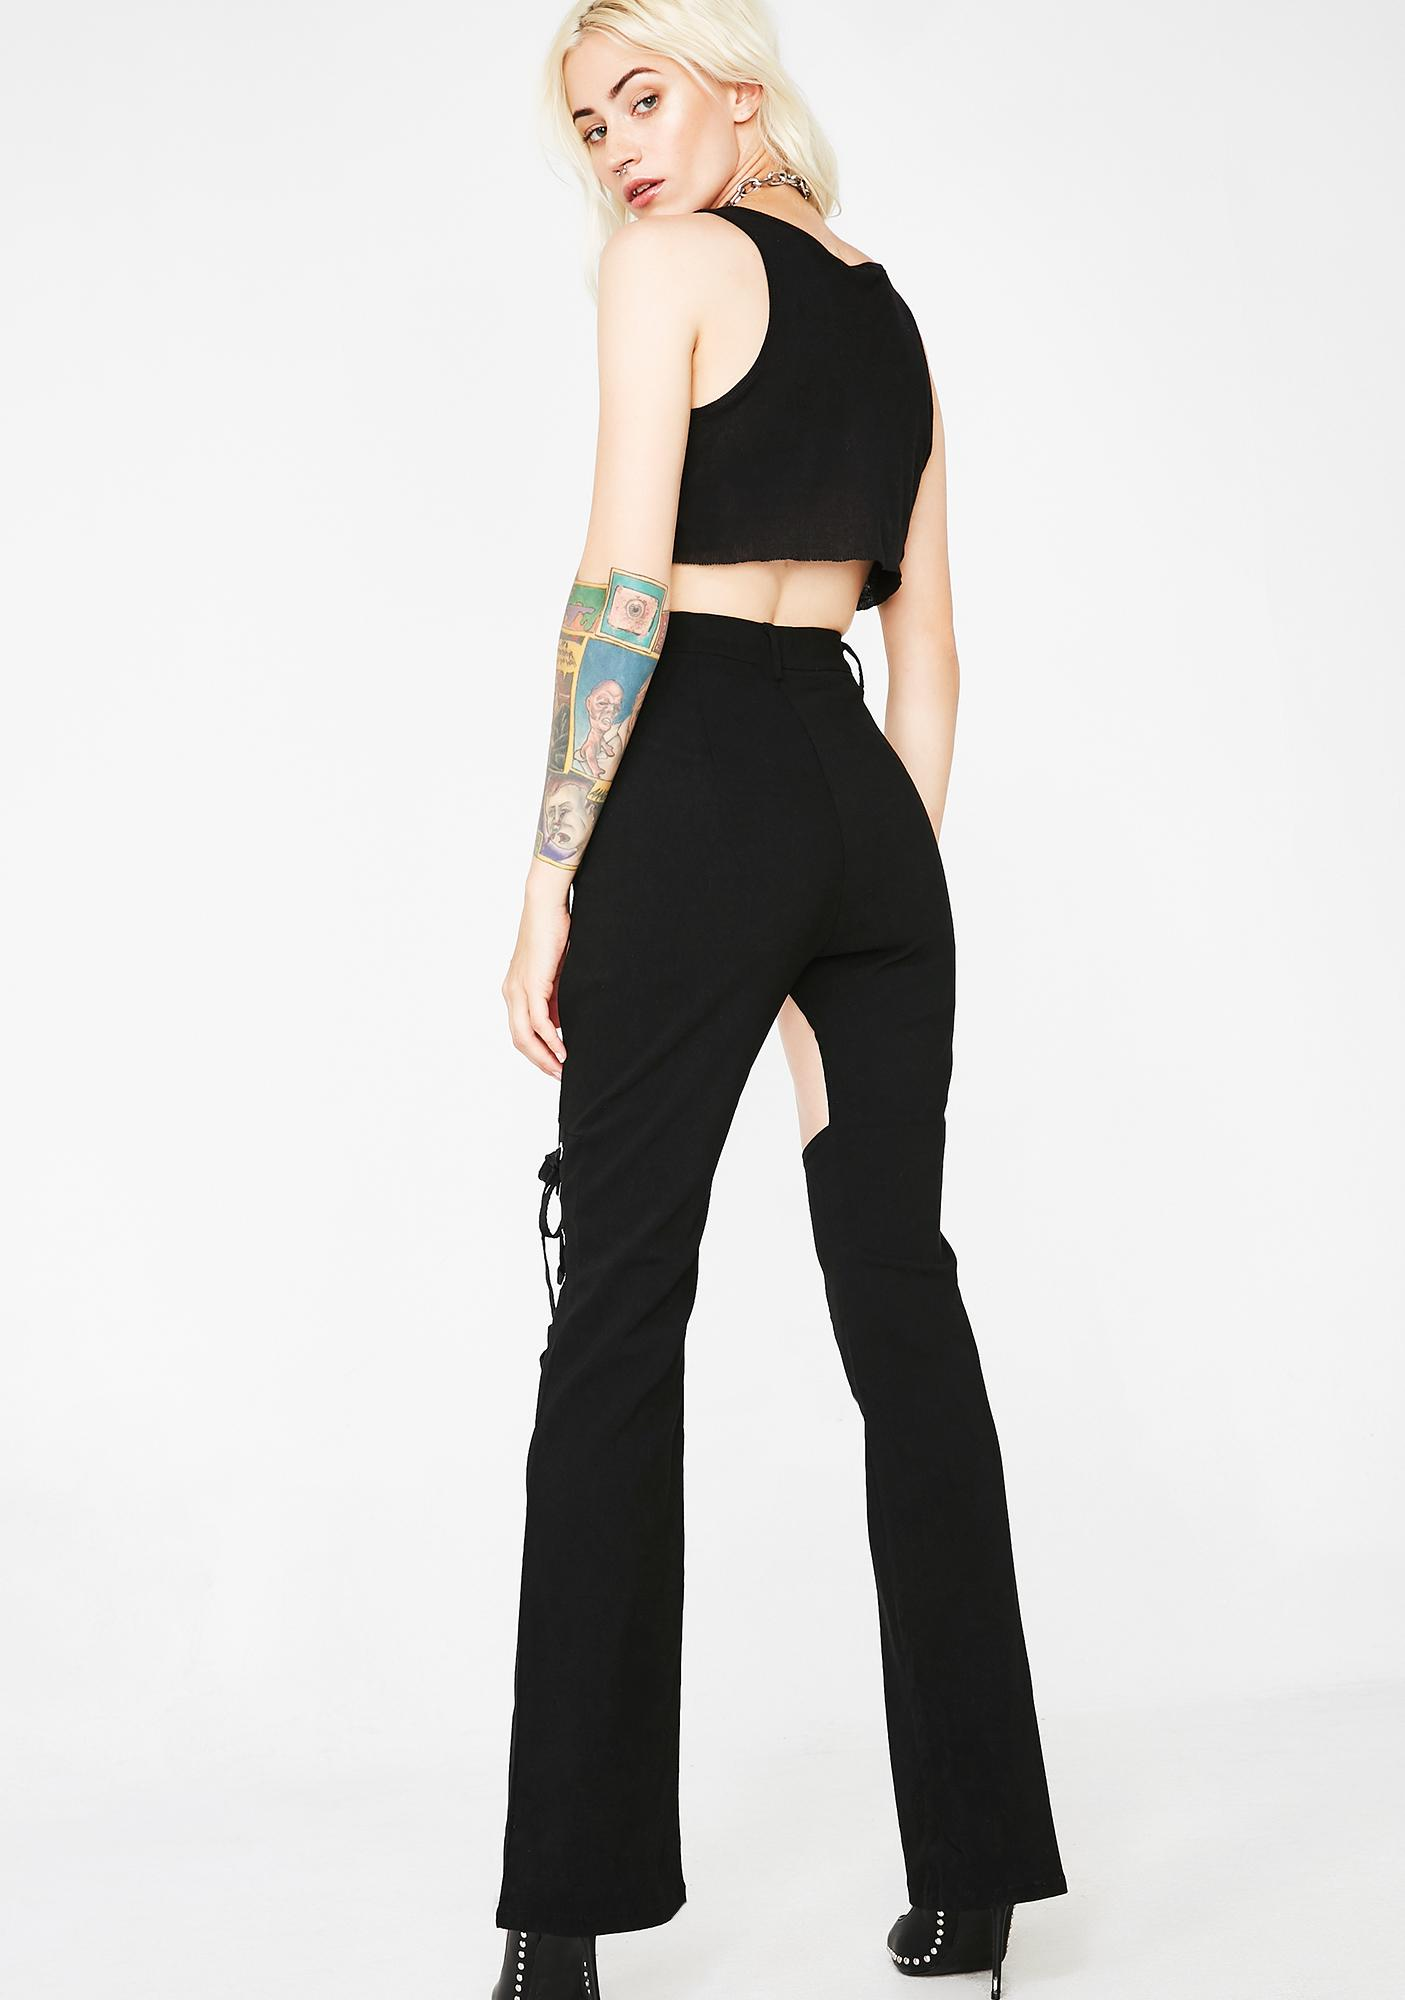 Giddy Up N' Go Lace-Up Pants